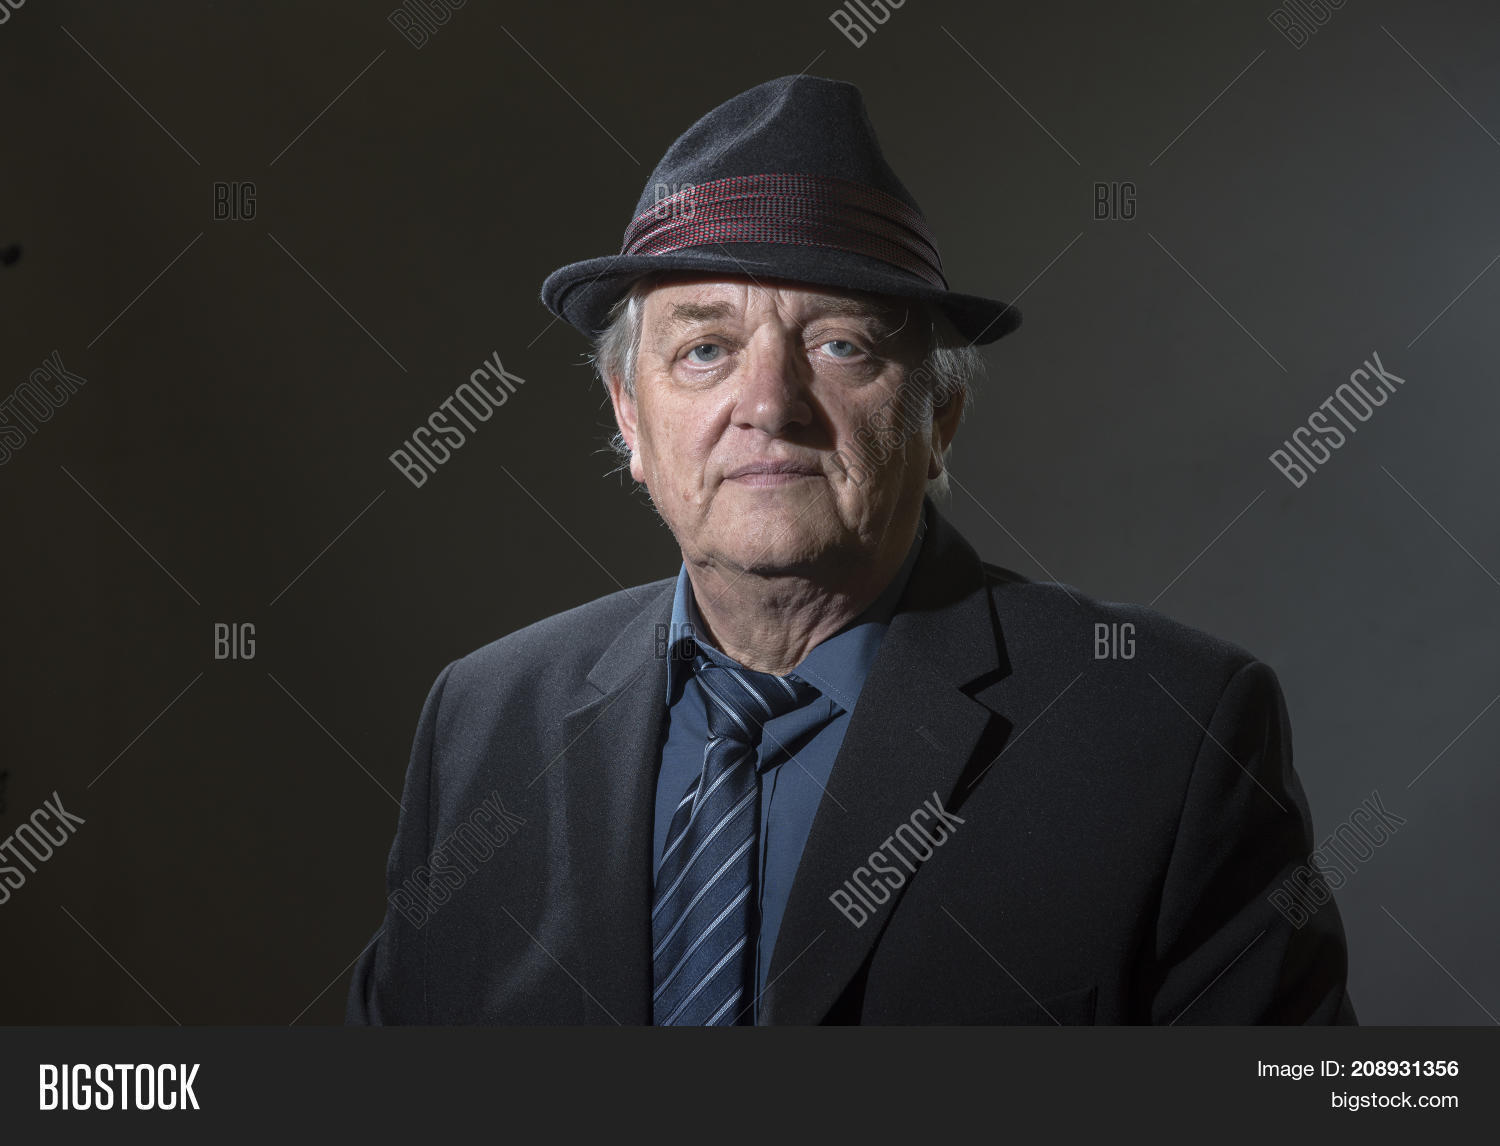 e714fbb17cbb6 Portrait image of a mature man in a shirt tie and fedora hat